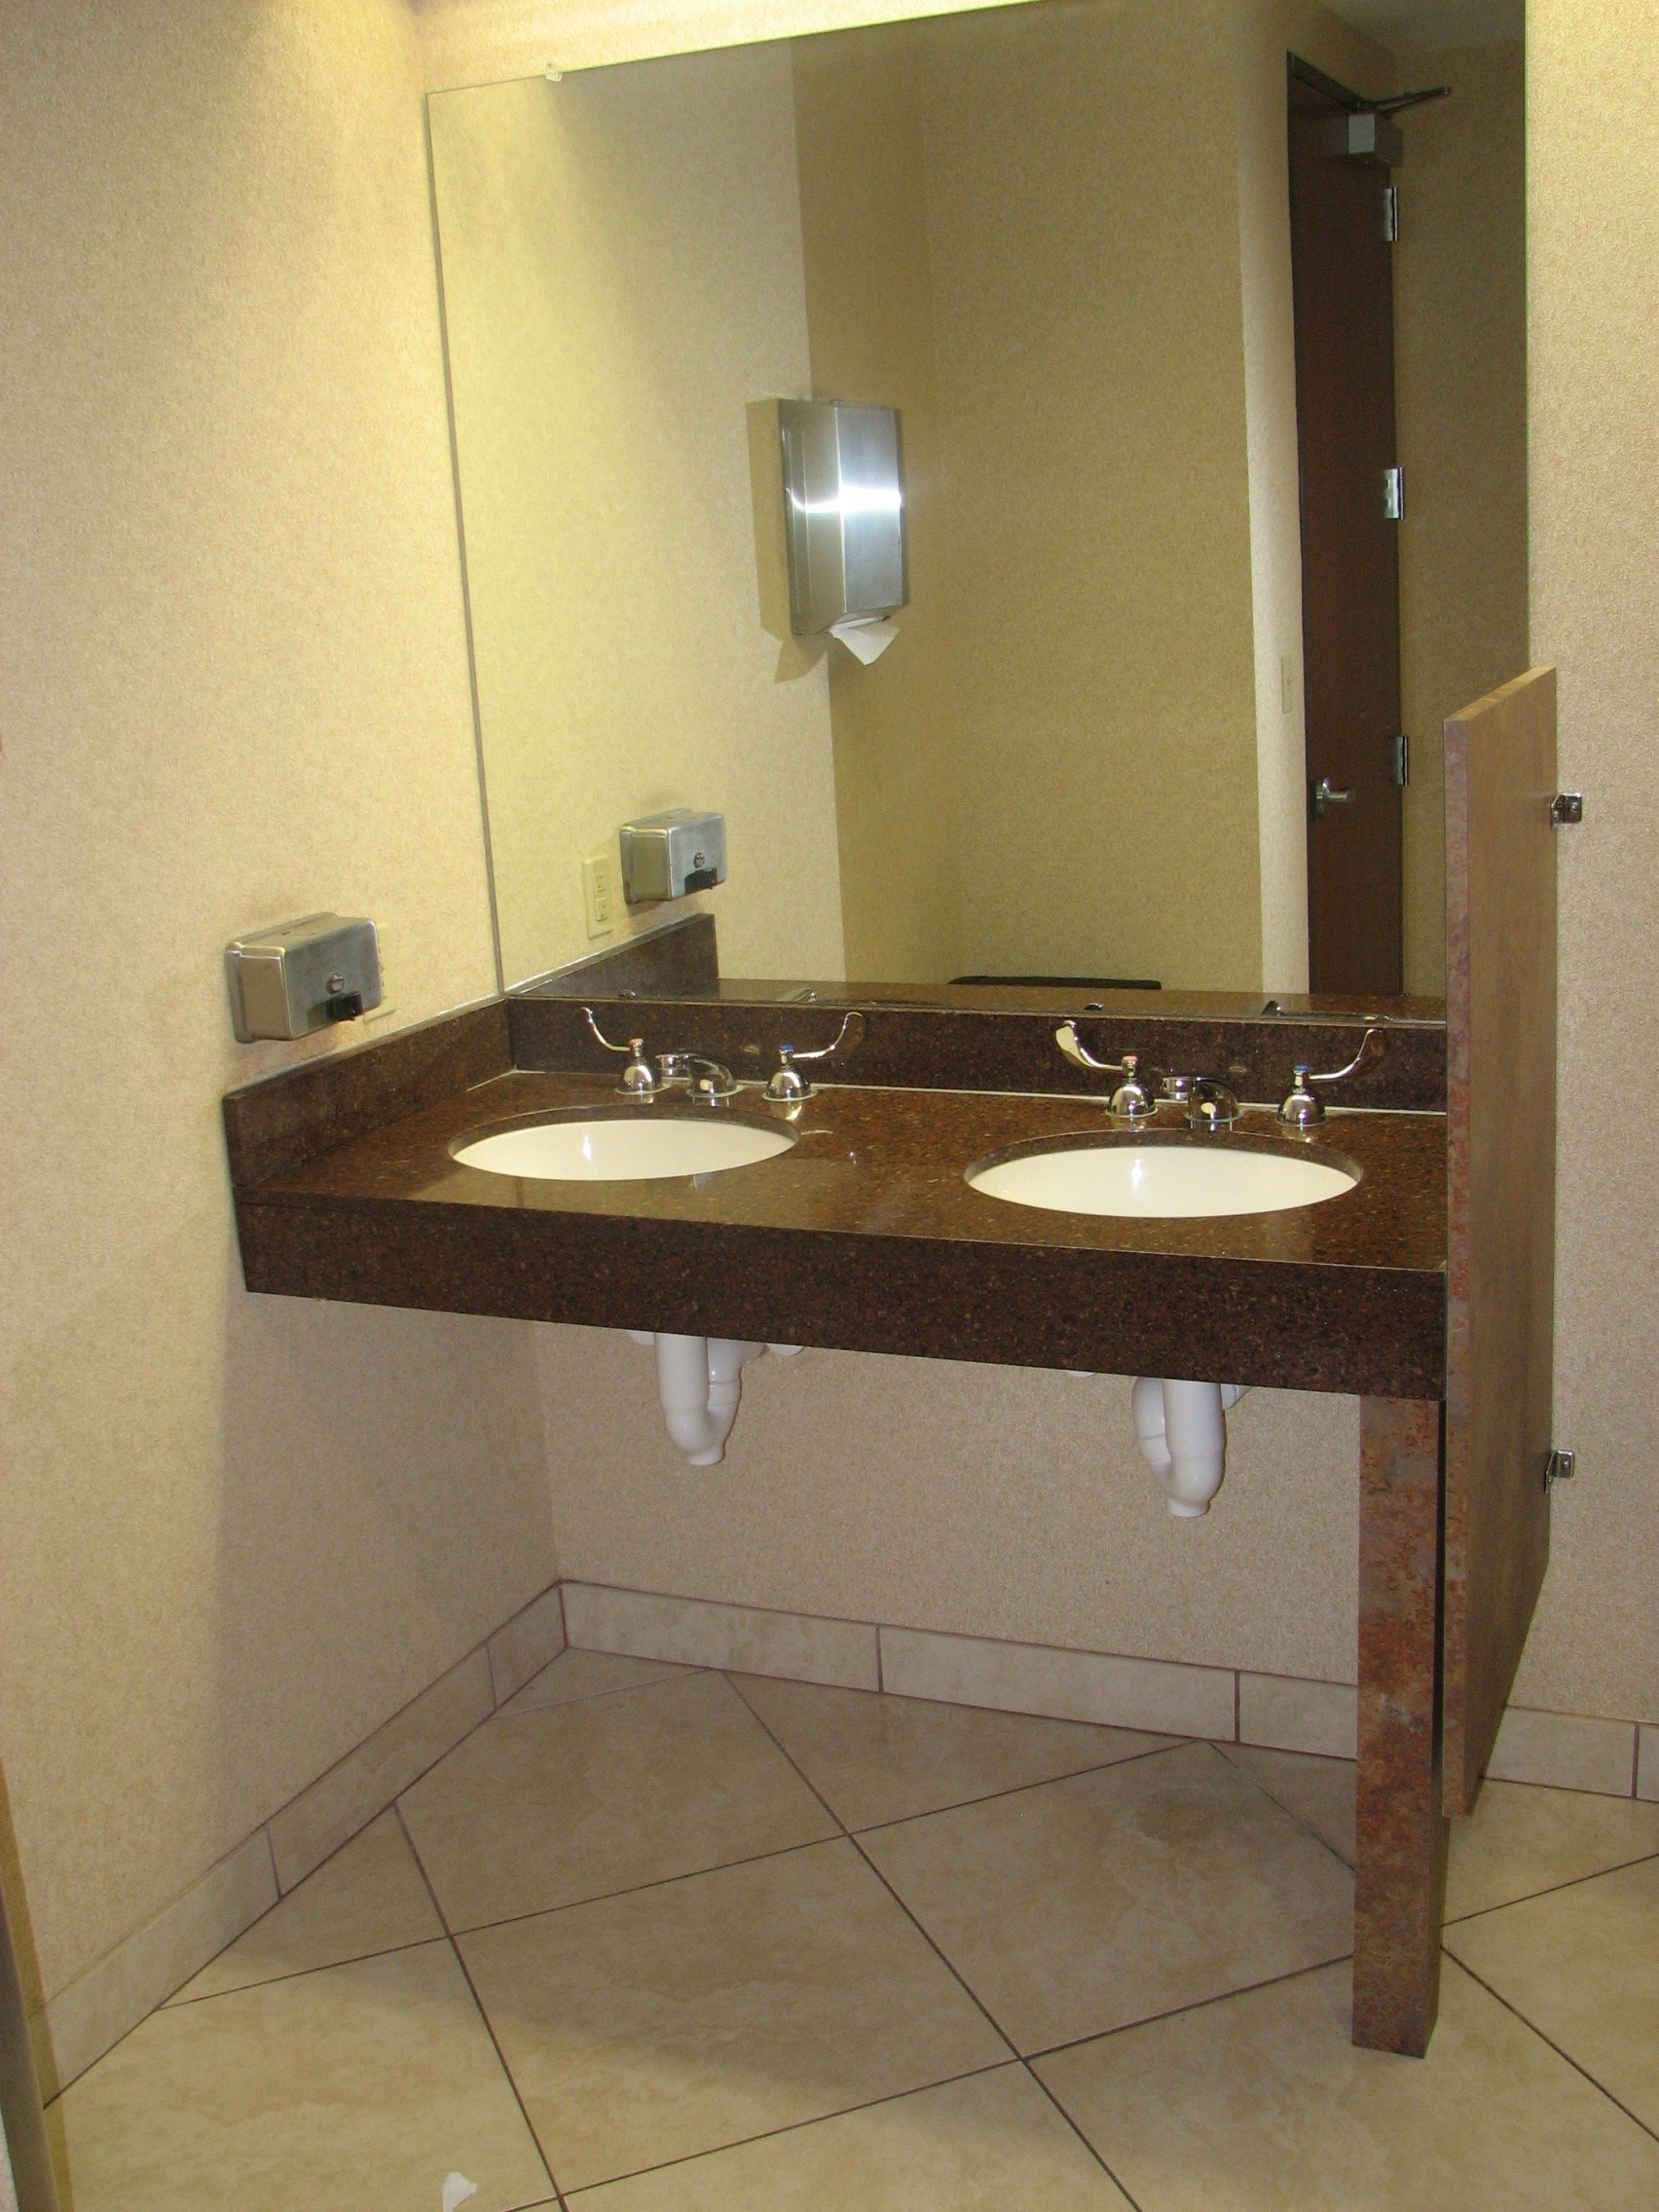 ADA vanities with roll under capability